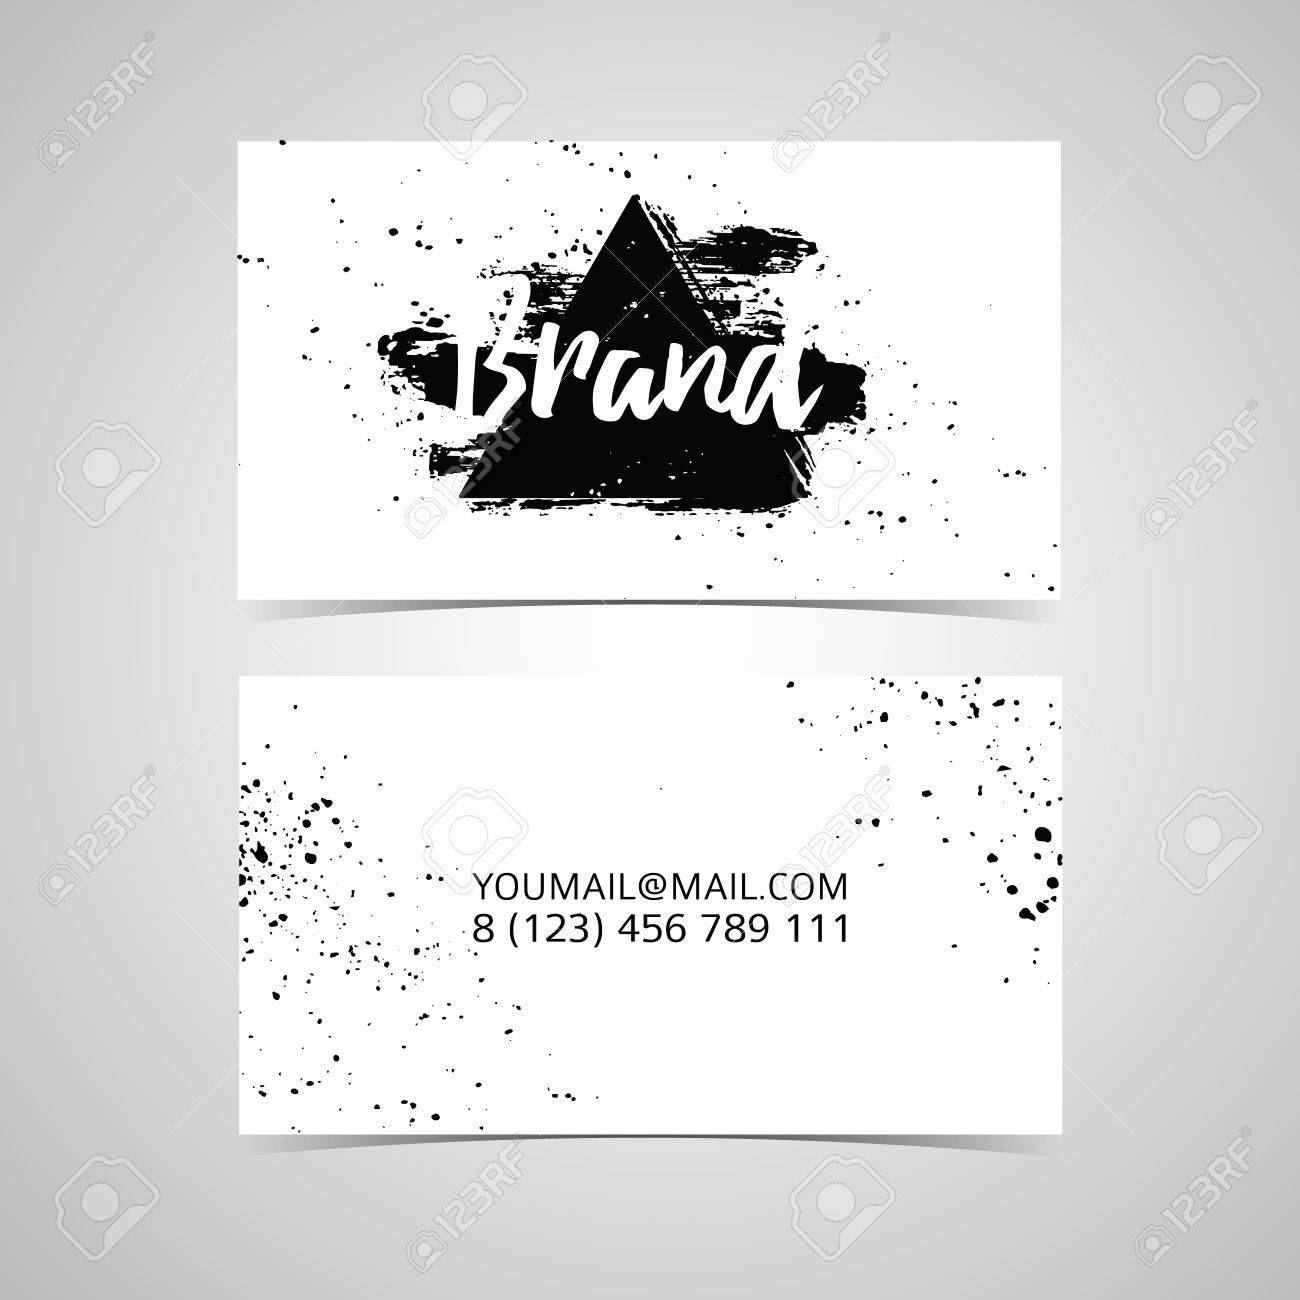 Monochrome Design Template Business Card With Ink Spots In A ...